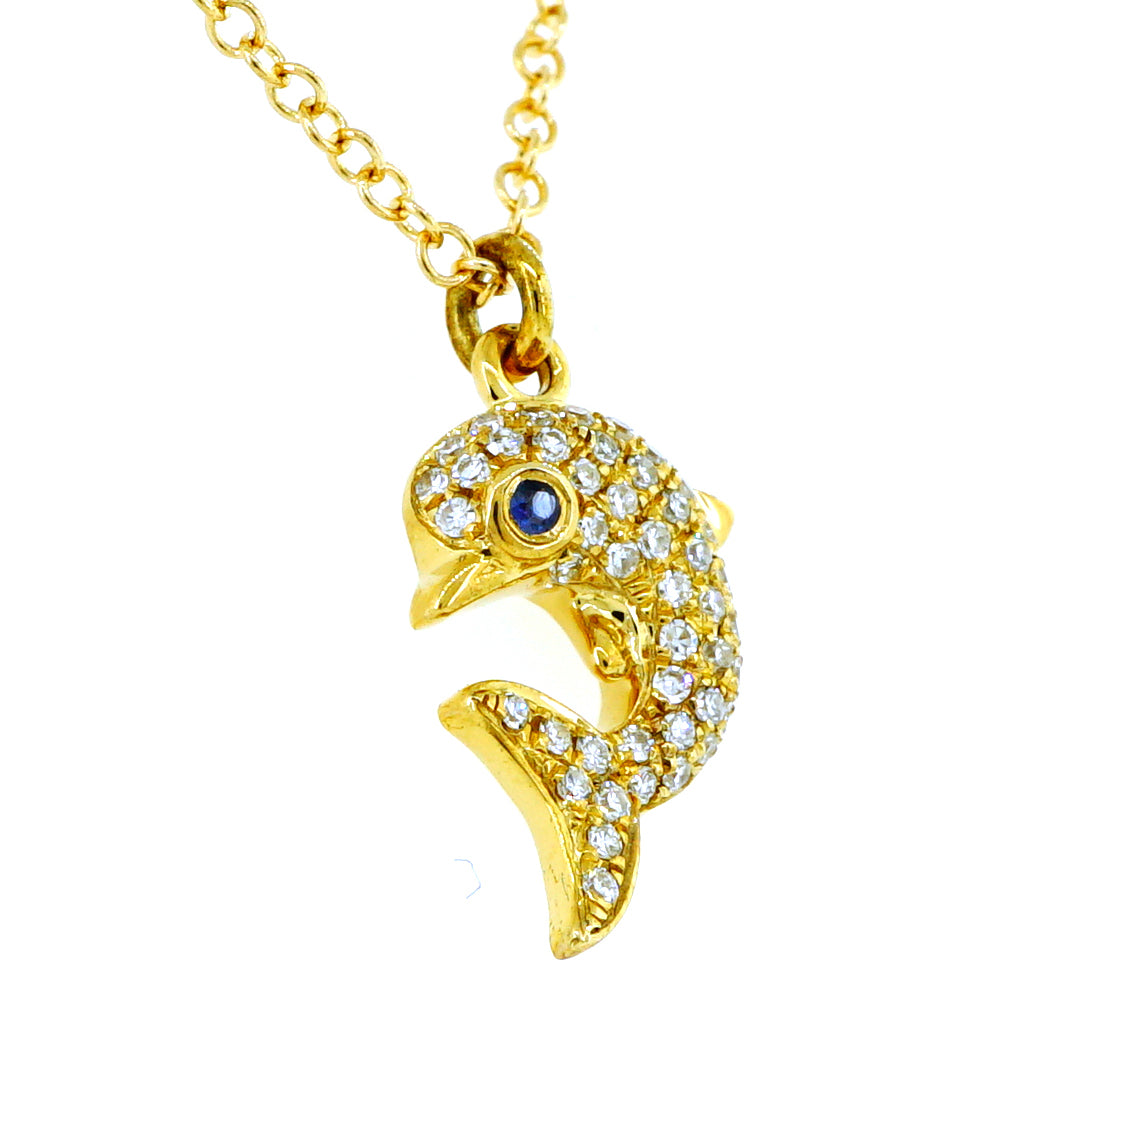 14k Yellow Gold Dolphin Diamond Pendant Charm 0.08ctw with Chain